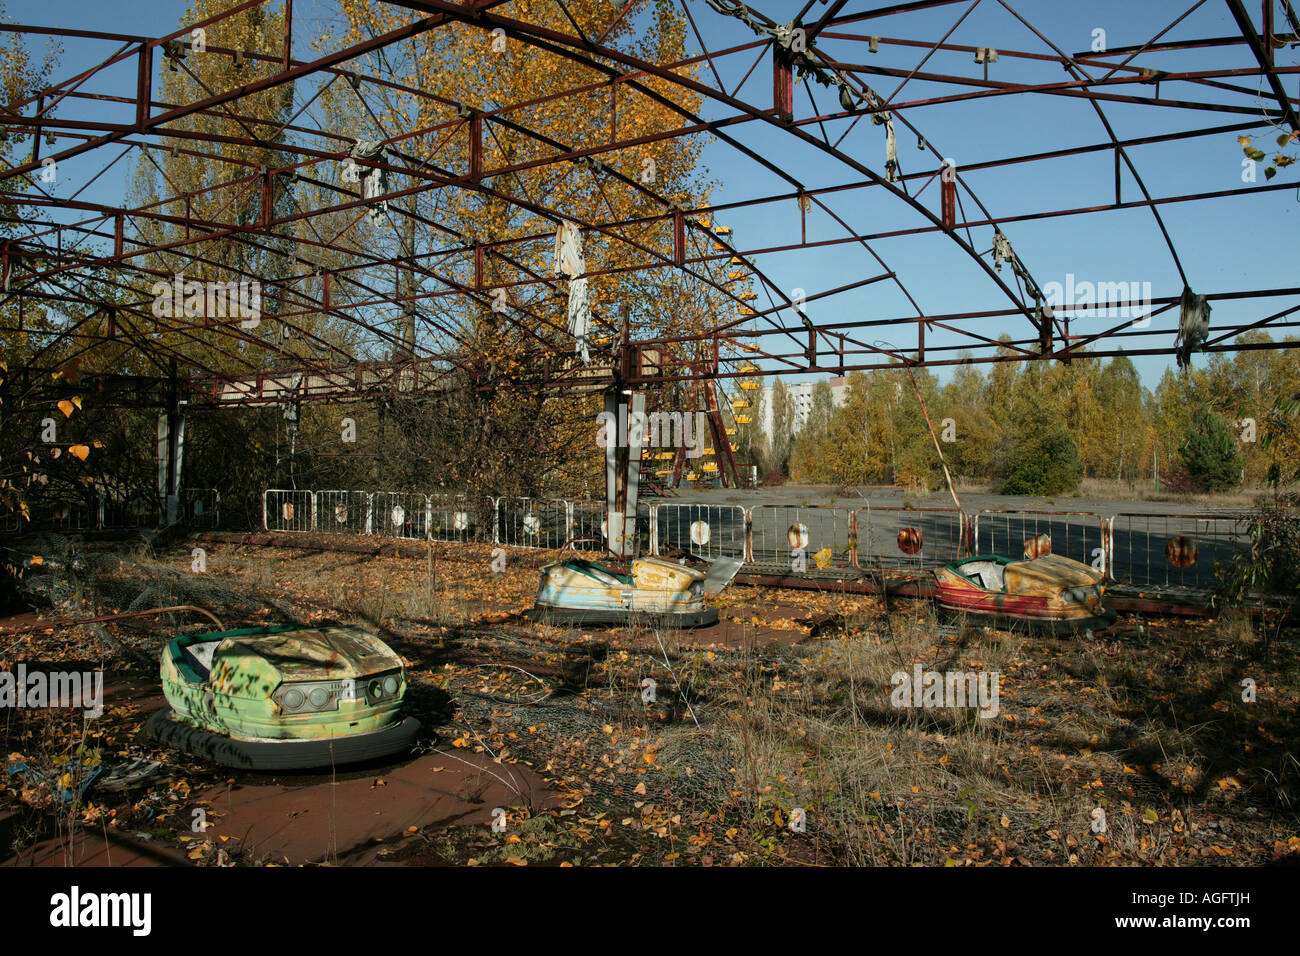 Abandoned funfair ride prypiat chernobyl exclusion zone - Stock Image